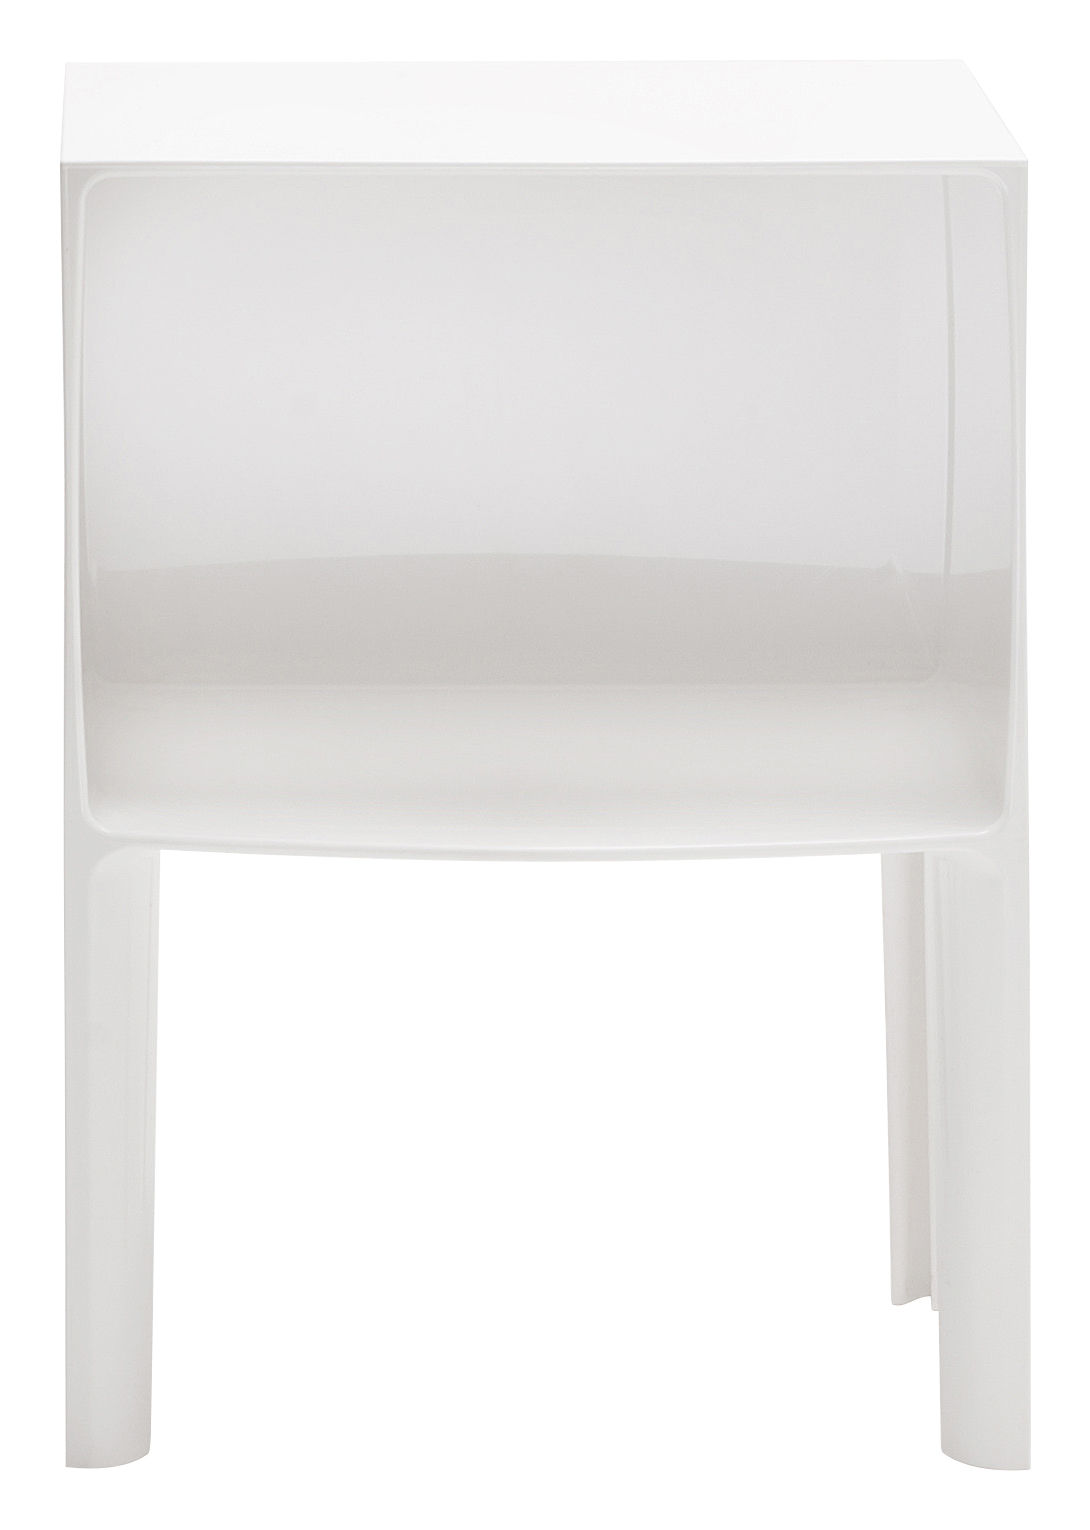 Table de chevet small ghost buster blanc opaque kartell - Kartell table de chevet ...